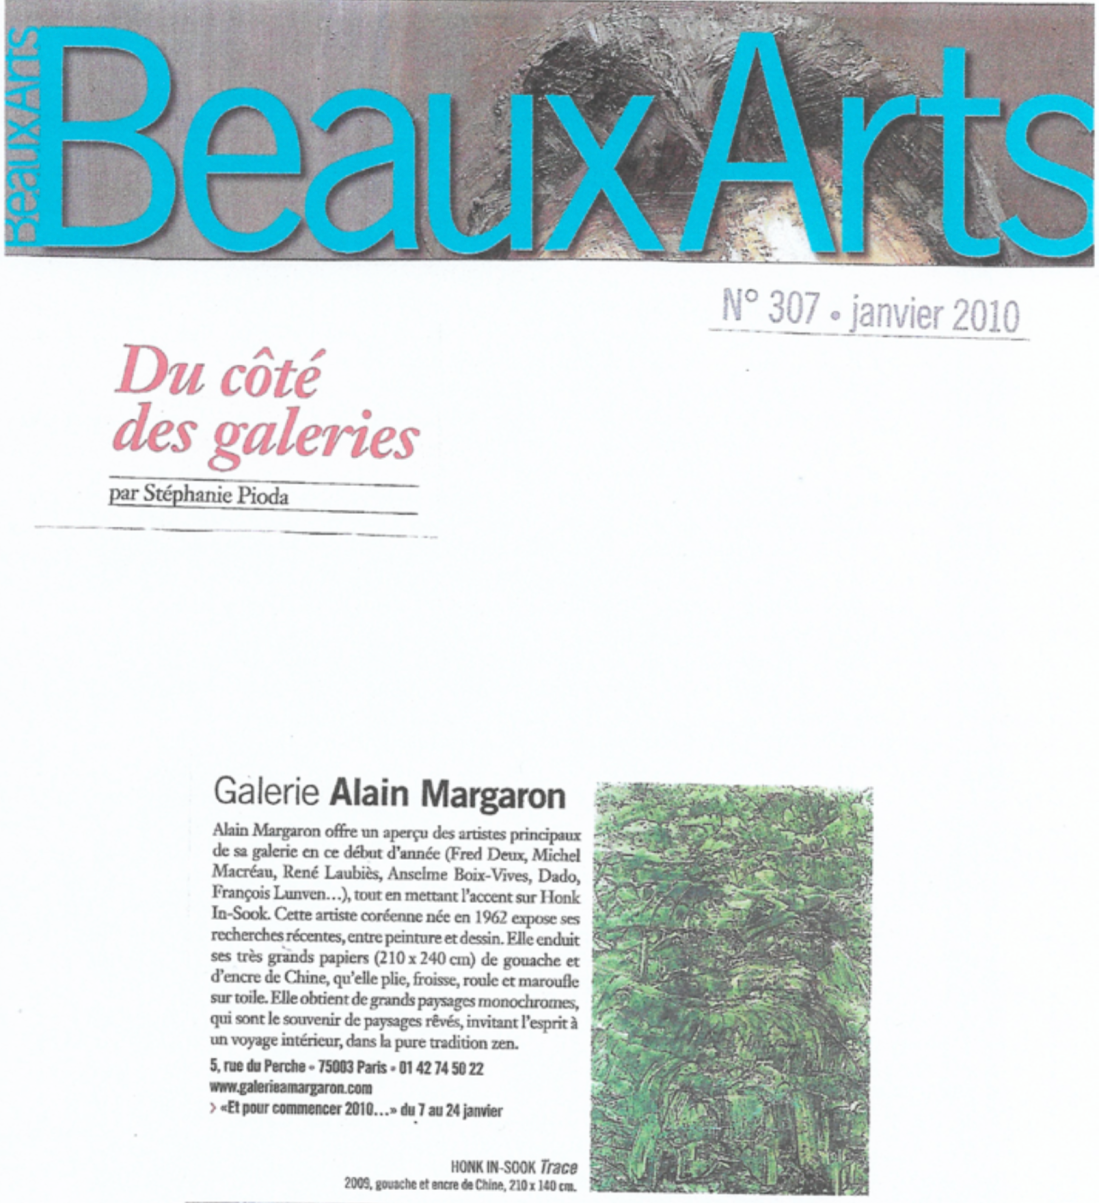 Hong_article_2010_beauxArts